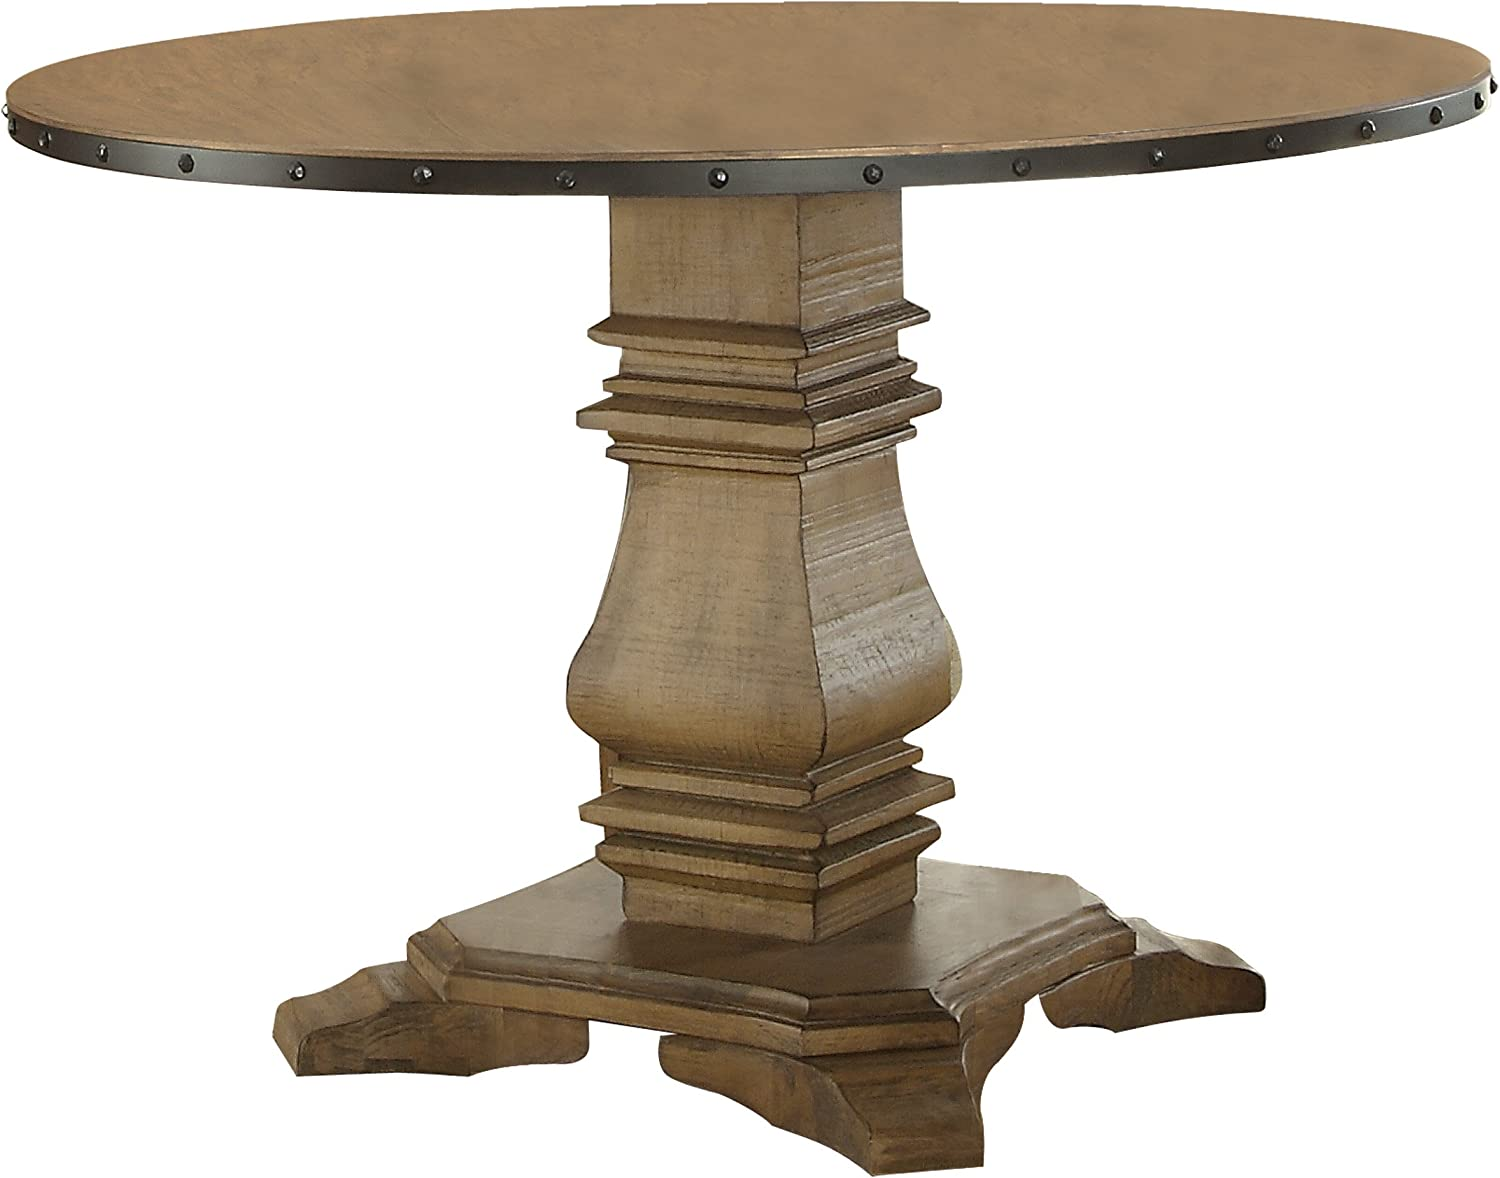 Homelegance Veltry 45 Round Dining Table with Pedestal Leg and Metal Nail Head Accent Banding, Rustic Oak